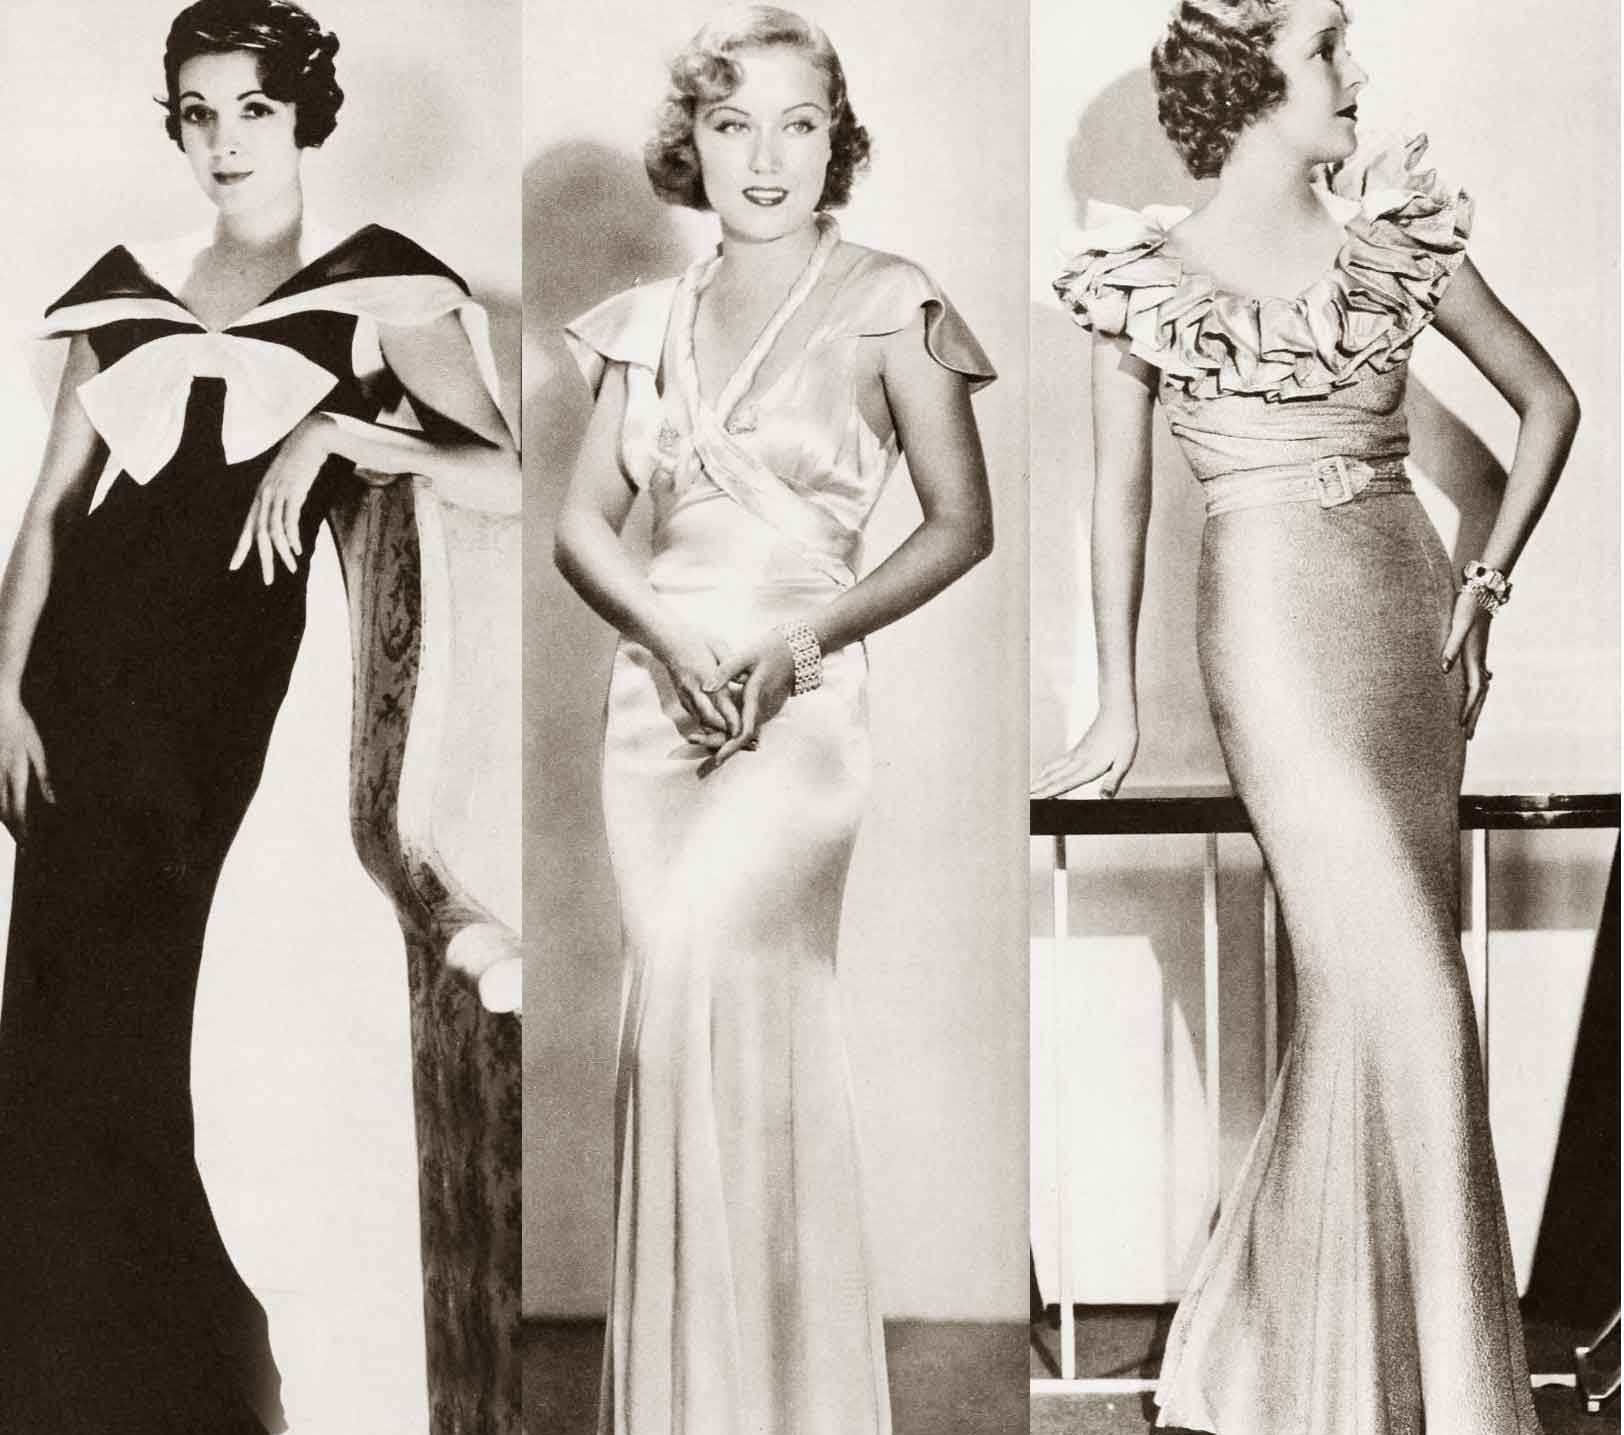 1930s-fashion-hollywood-evening-dress-1934_masolata.jpg